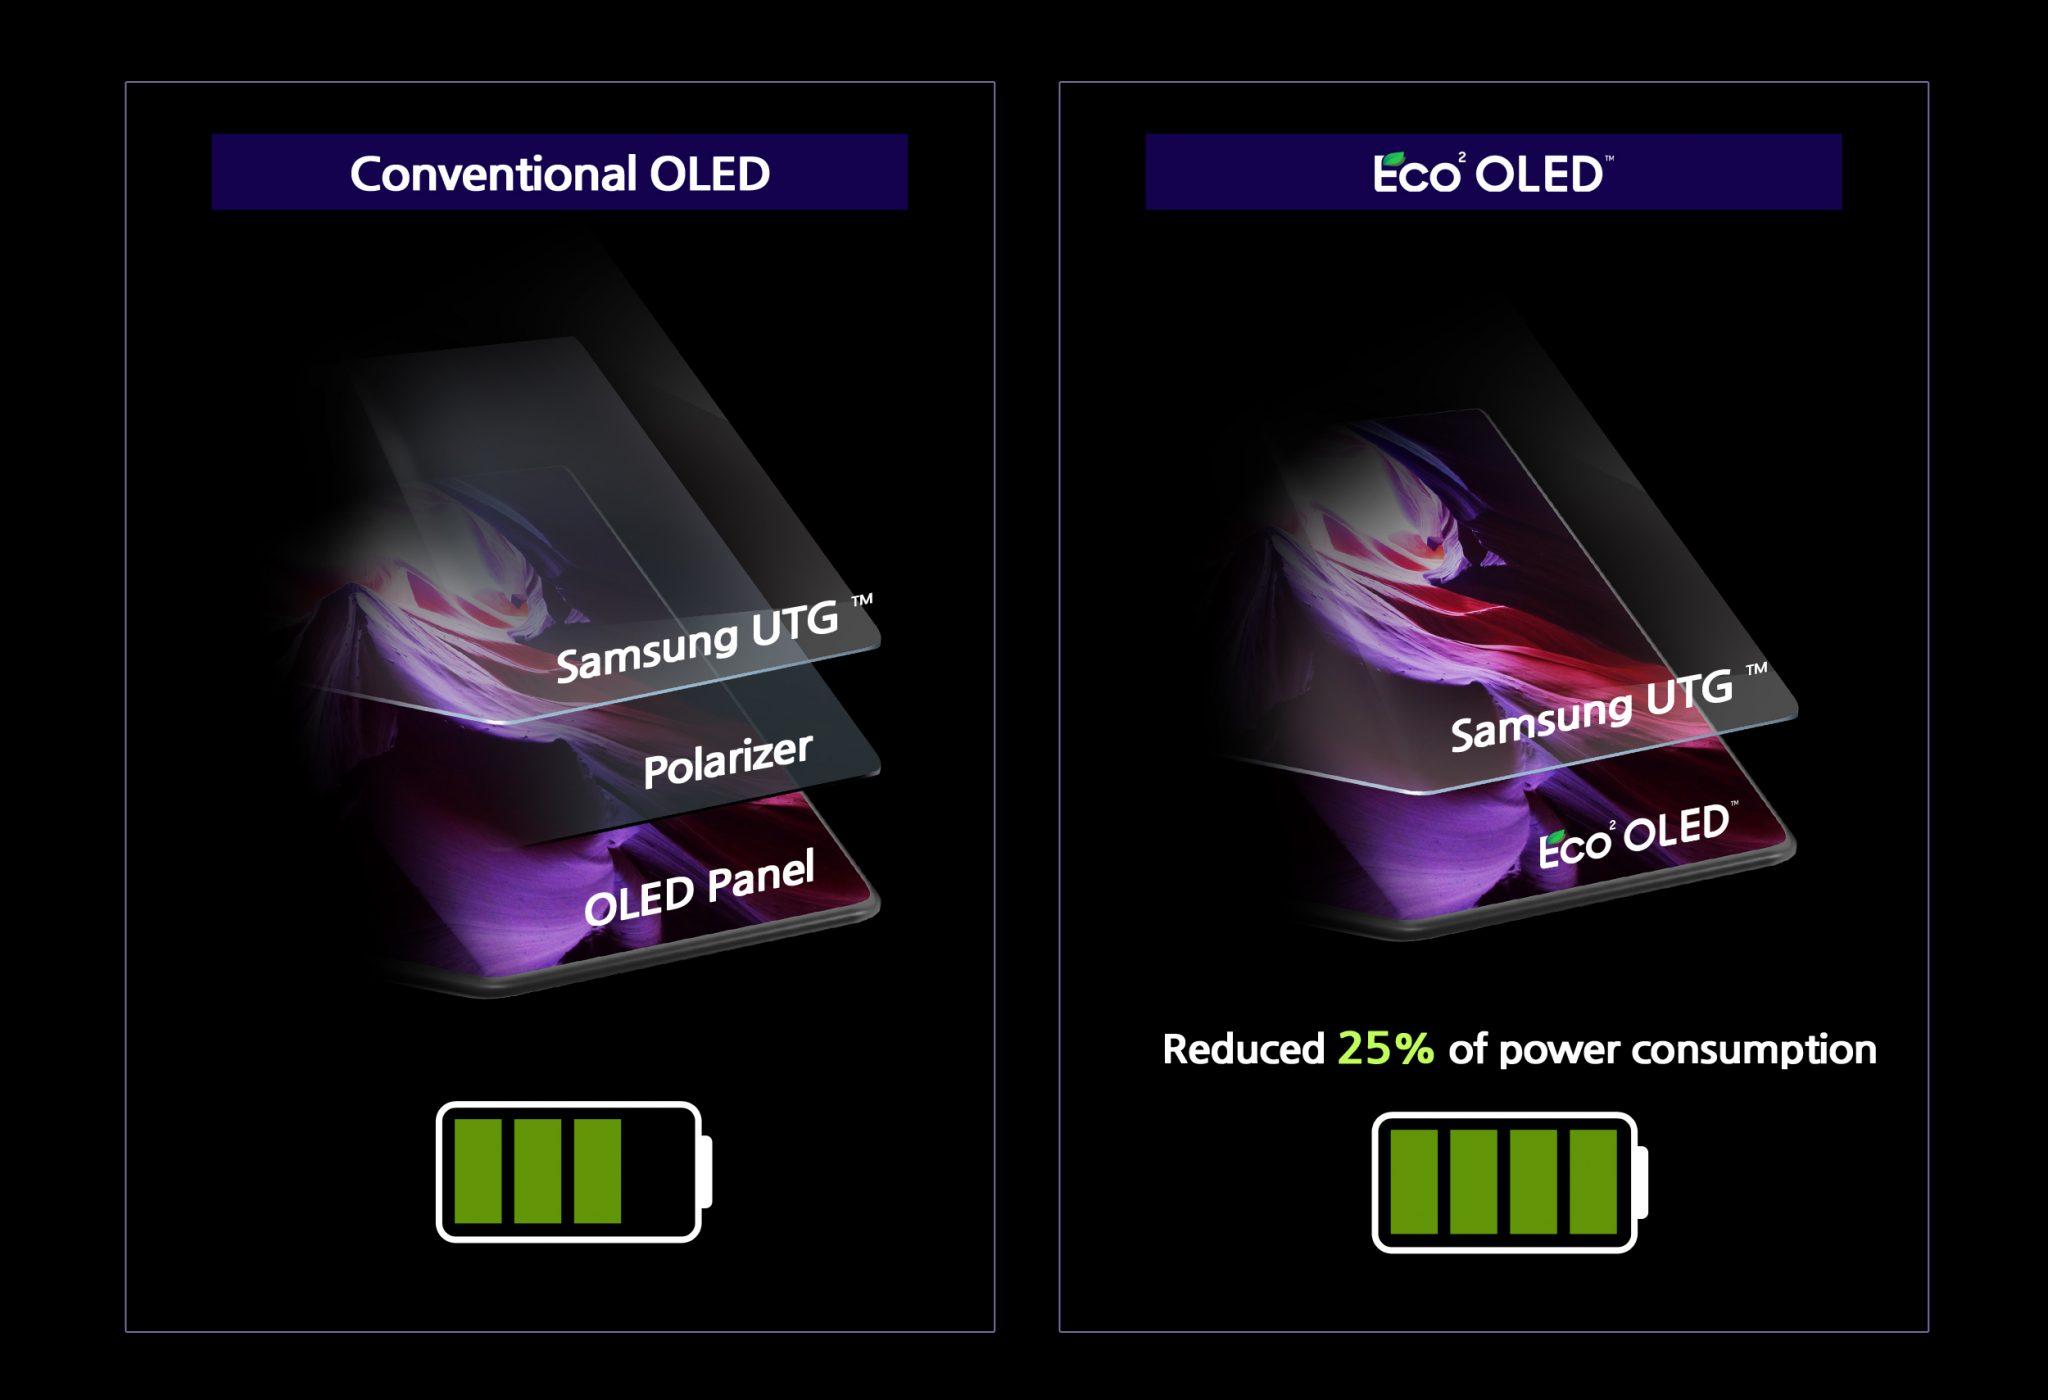 Samsung-Display-Eco2-OLED-Structure-2048x1400